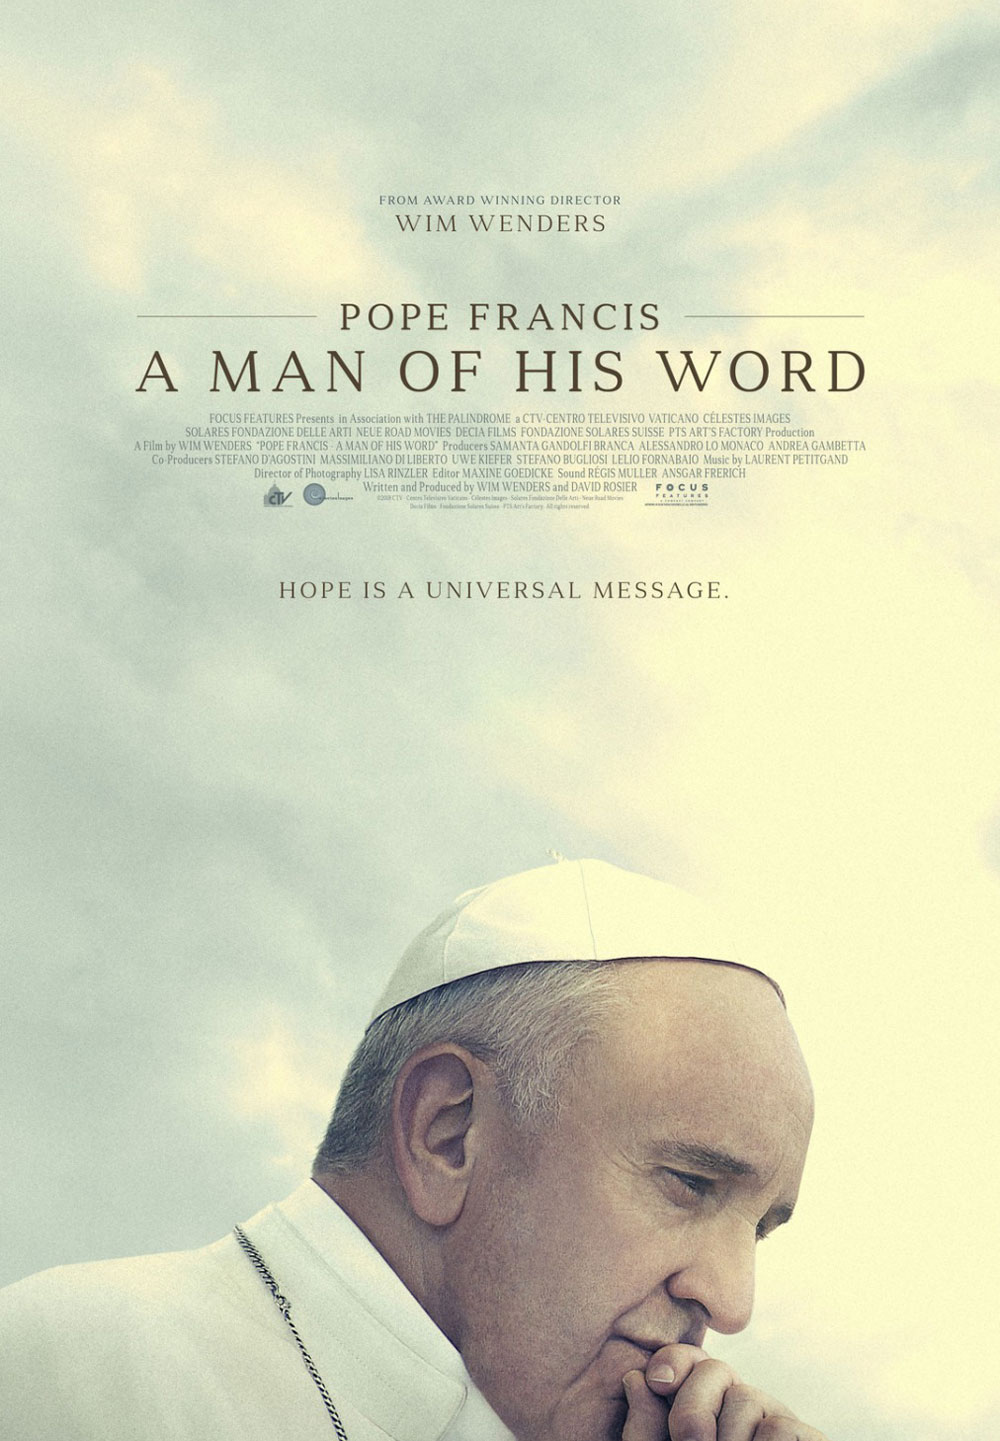 Pope Francis: A Man of His Word (2018) - Directed by: Wim WendersStarring: Pope FrancisRunning Time: 1h 36mRated: PGTMM Score: 4 stars out of 5 (I really liked it)STRENGTHS: Unique, Themes, SubjectWEAKNESSES: Length, False Endings